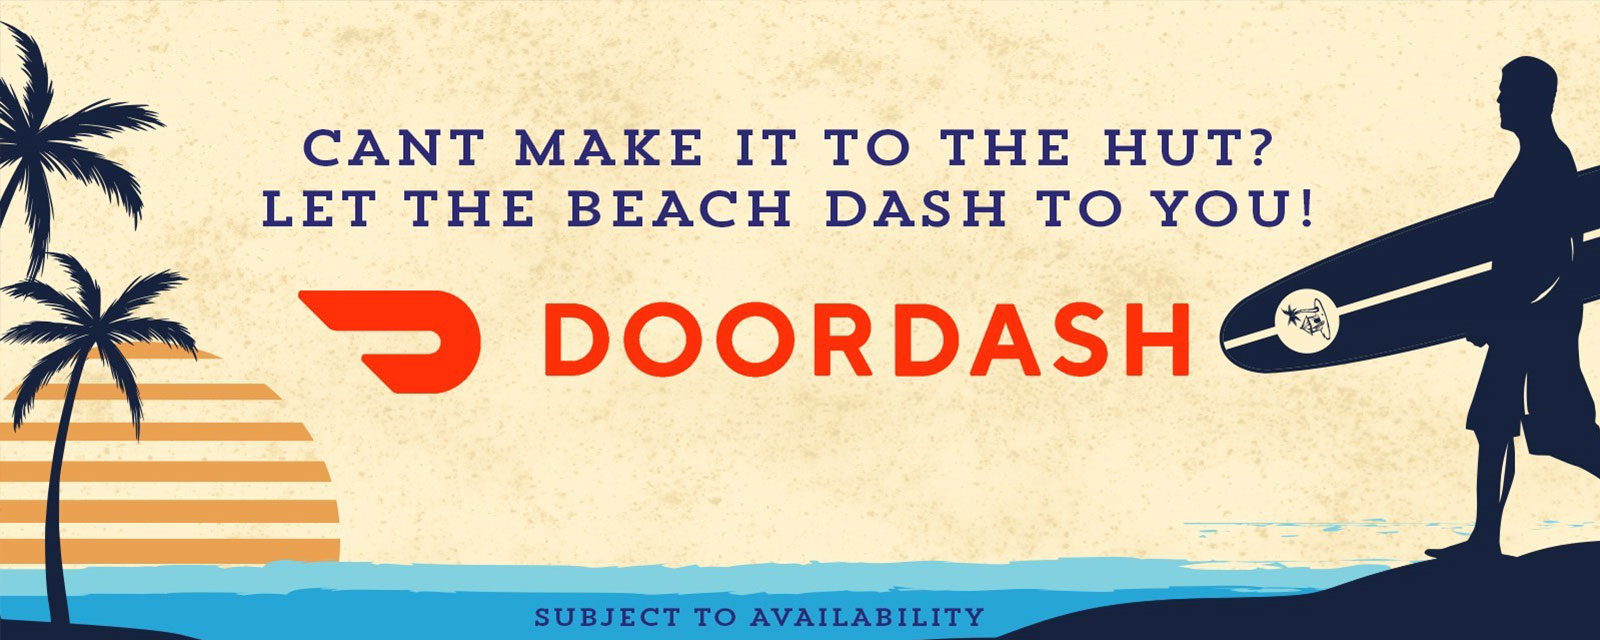 DoorDash Slide